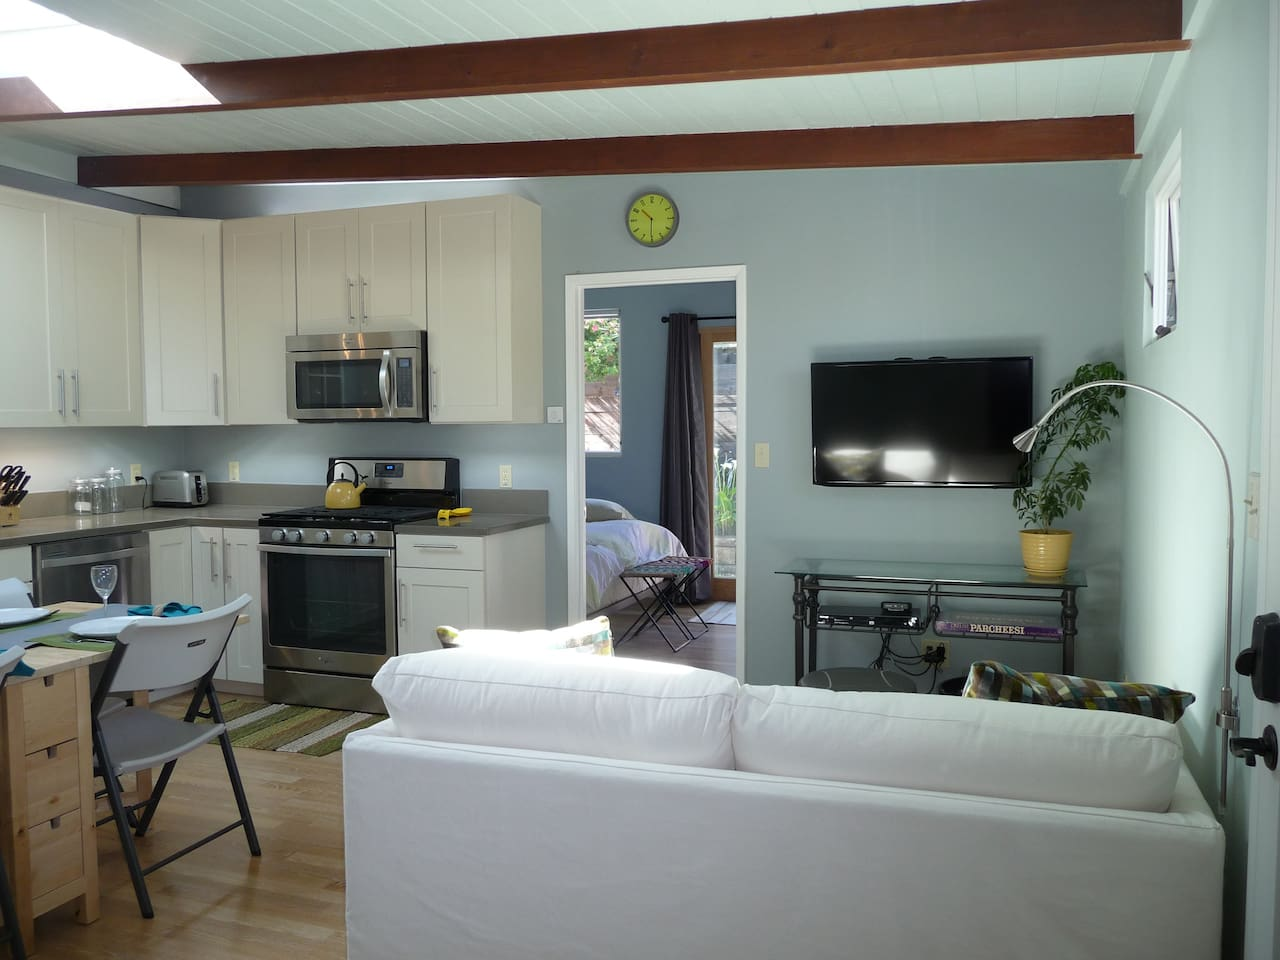 Living area and kitchen.